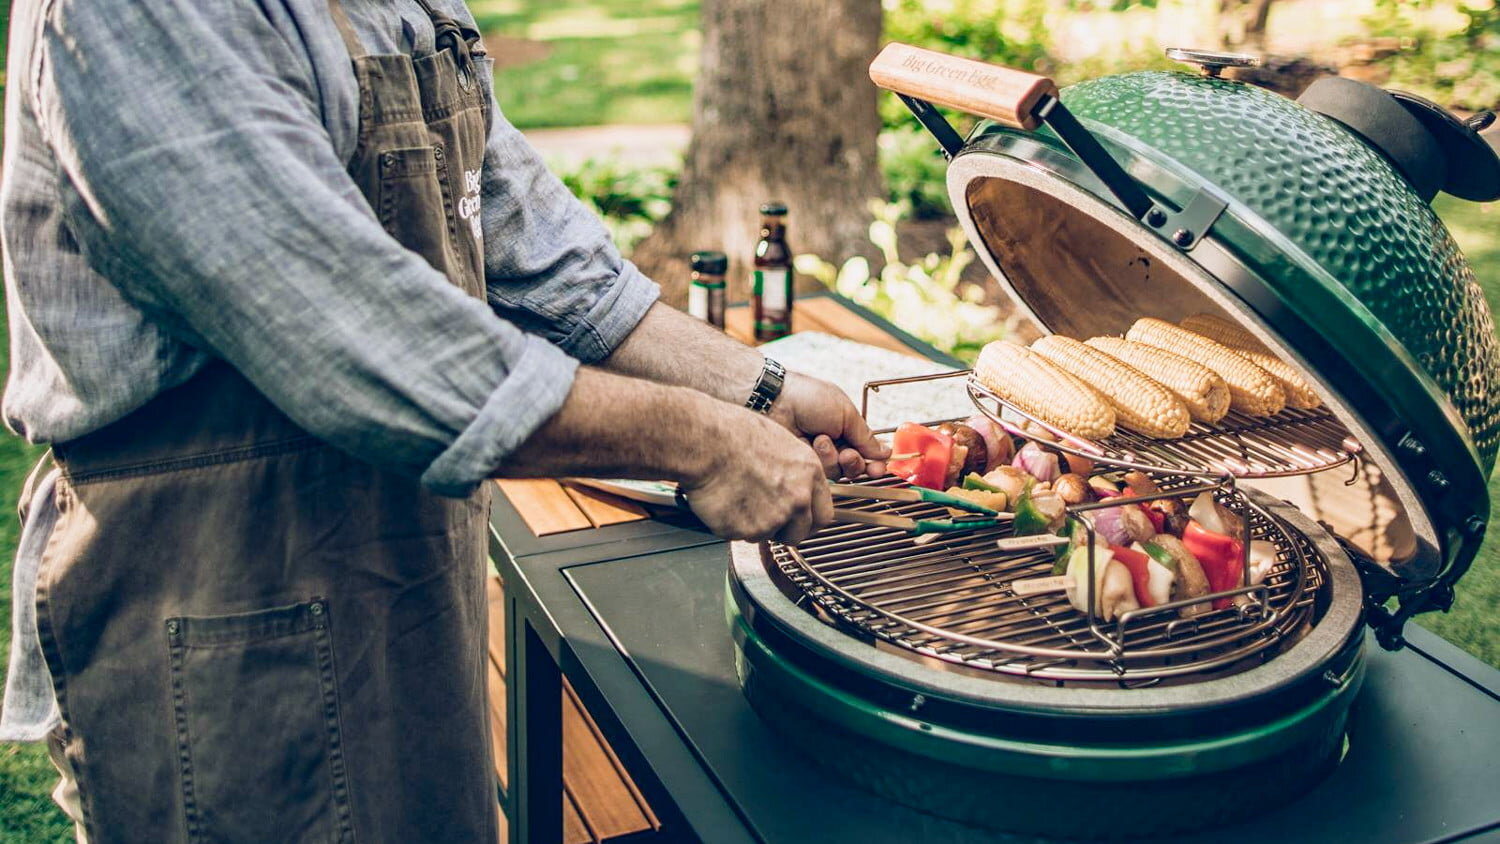 Burnt is the new black. - Get exclusive savings on your new Big Green Egg by purchasing a Burnt EGG.Your Big Green Egg will be used by one of our cook teams at the Florida Gulf Coast EGGfest to prepare meats, sides, or desserts for guests' enjoyment. Burnt Eggs will be available for pickup after the event.In addition to the unbelievable savings, you'll get free admission, as well as credit as an Official Taster—a judge for Best in Show at the February 29th event.